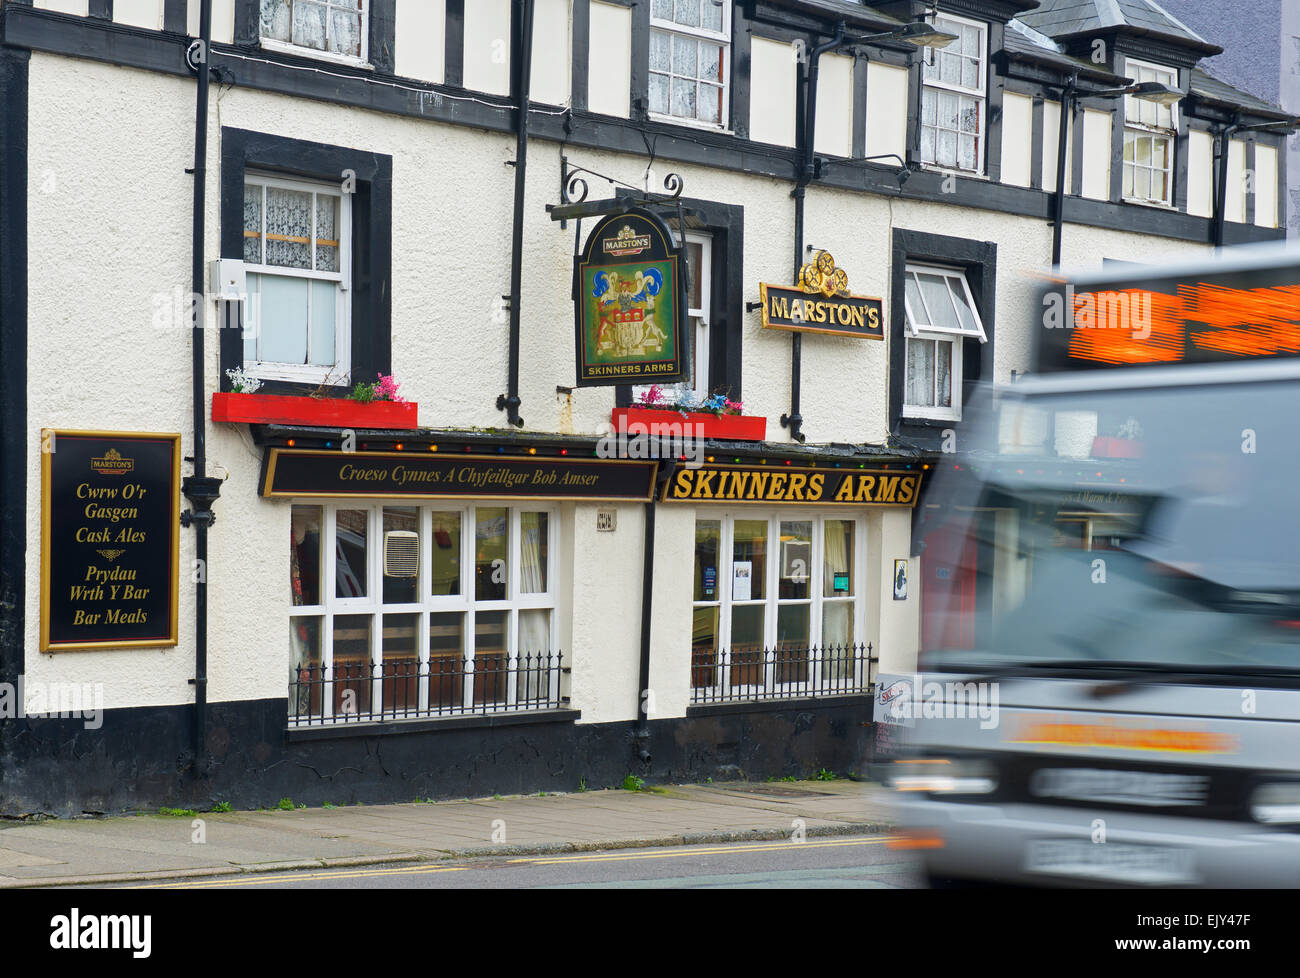 Blurred Royal Mail van passing the Skinners arms pub in Machynlleth, Powys, North Wales UK - Stock Image